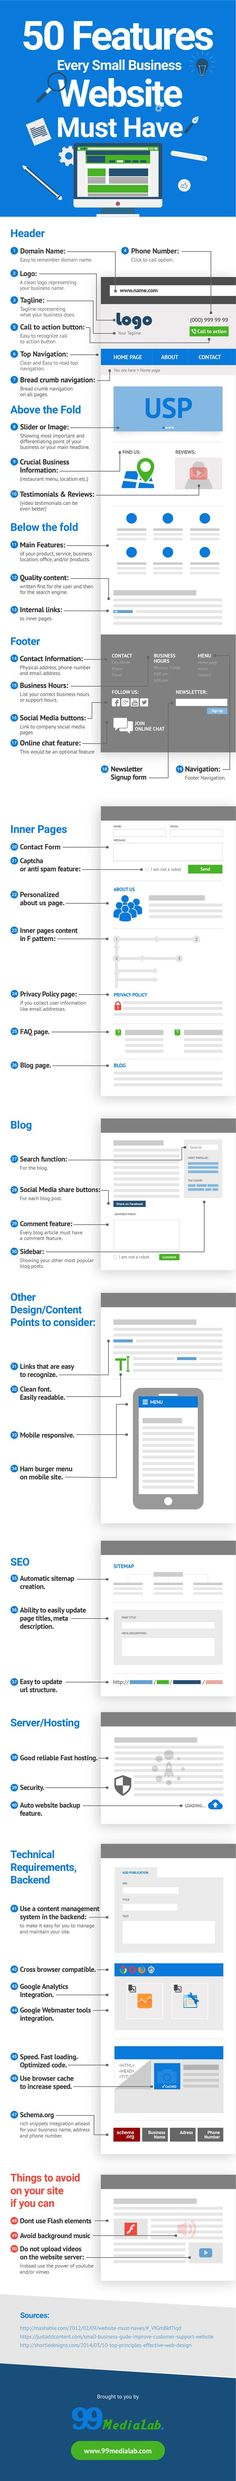 50 Essential Features for Every Small Business Website [Infographic]